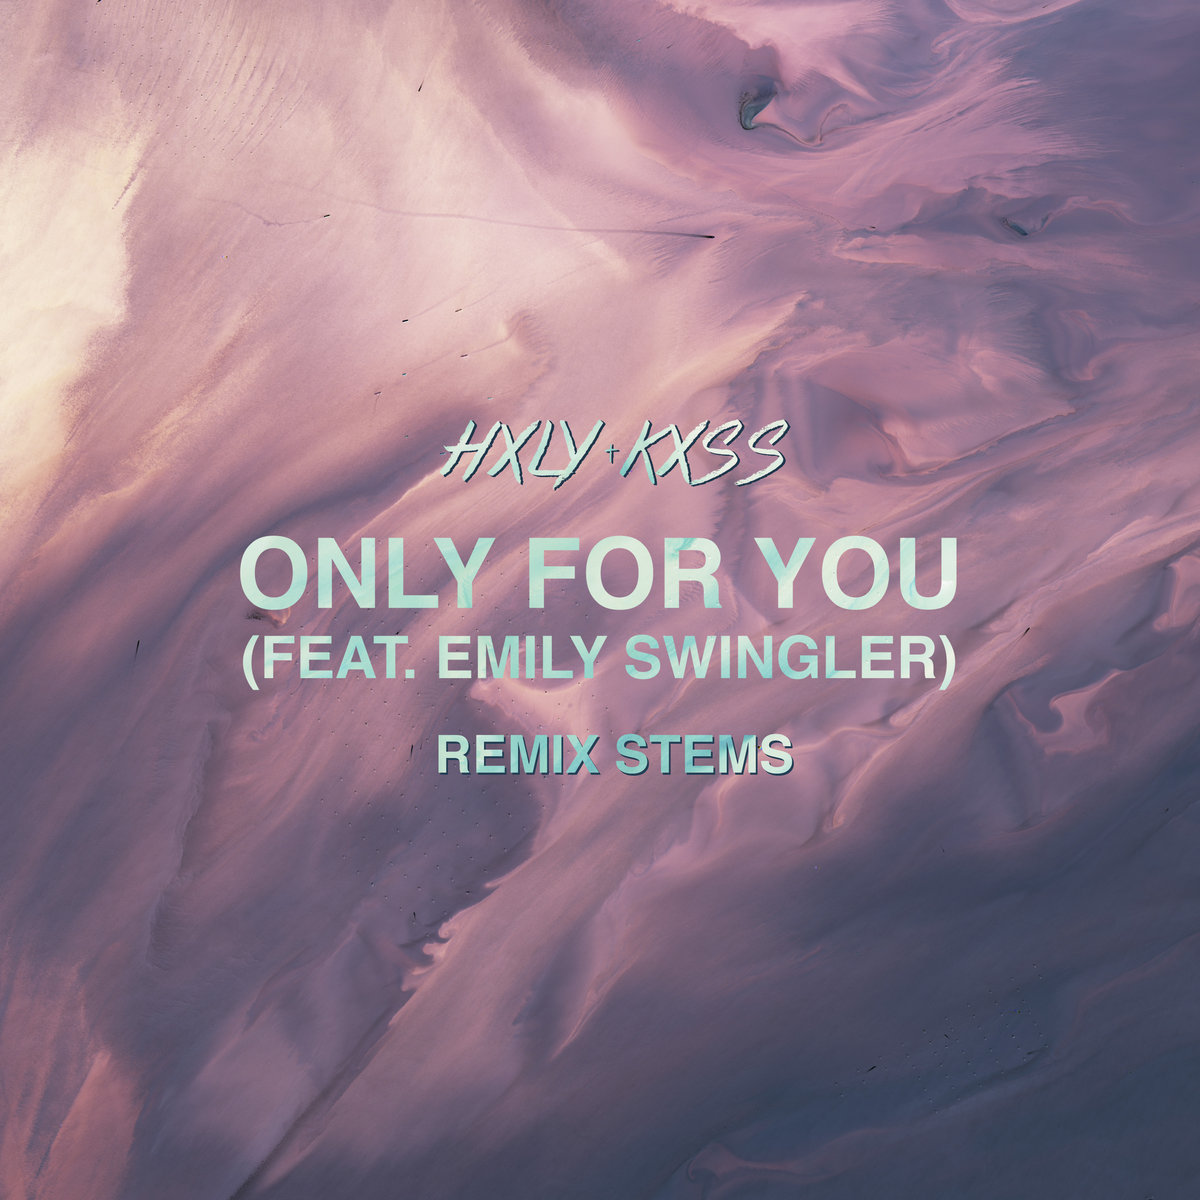 Only For You (Remix Stems) | HXLY KXSS